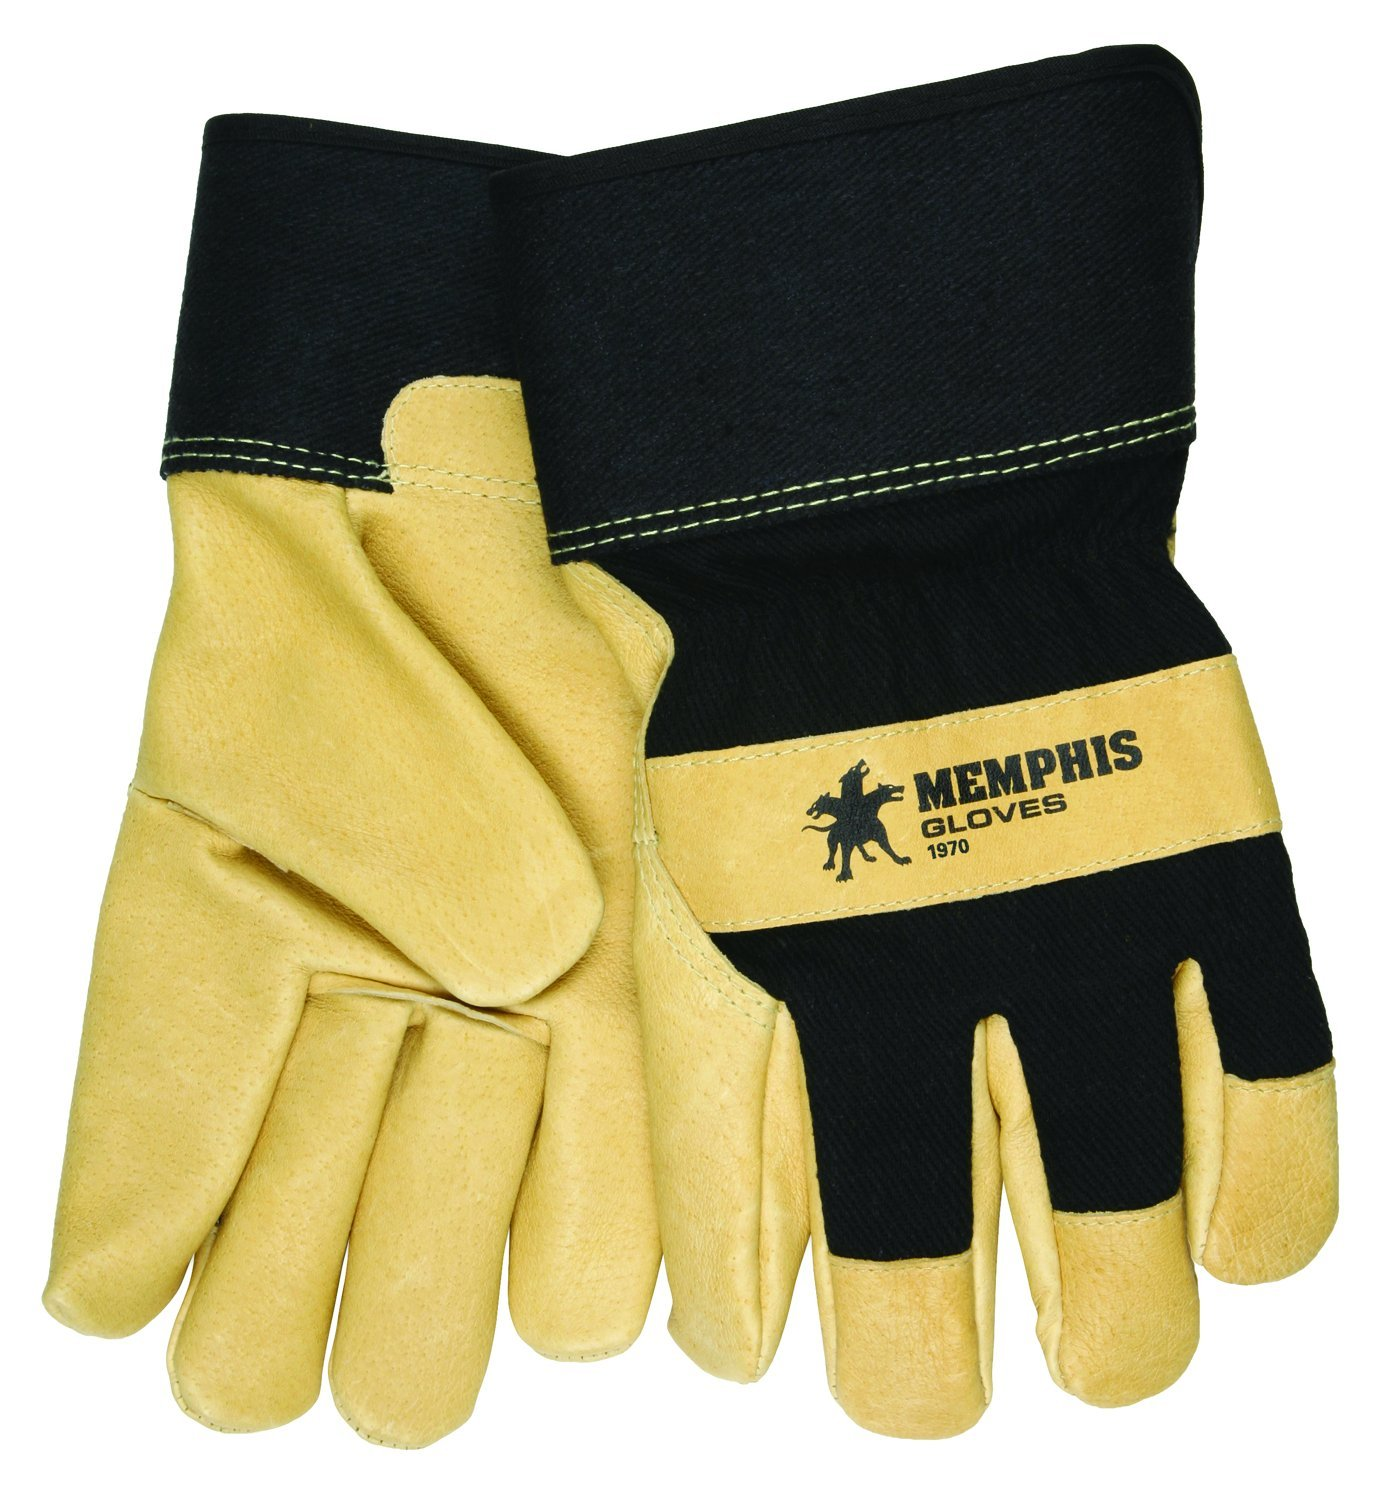 MCR Safety 1970XXL Grain Pigskin Leather Thermal Lined Gloves with 2-1/2-Inch PE Cuff, Light Yellow/Black, 2X-Large, 1-Pair by MCR Safety (Image #1)